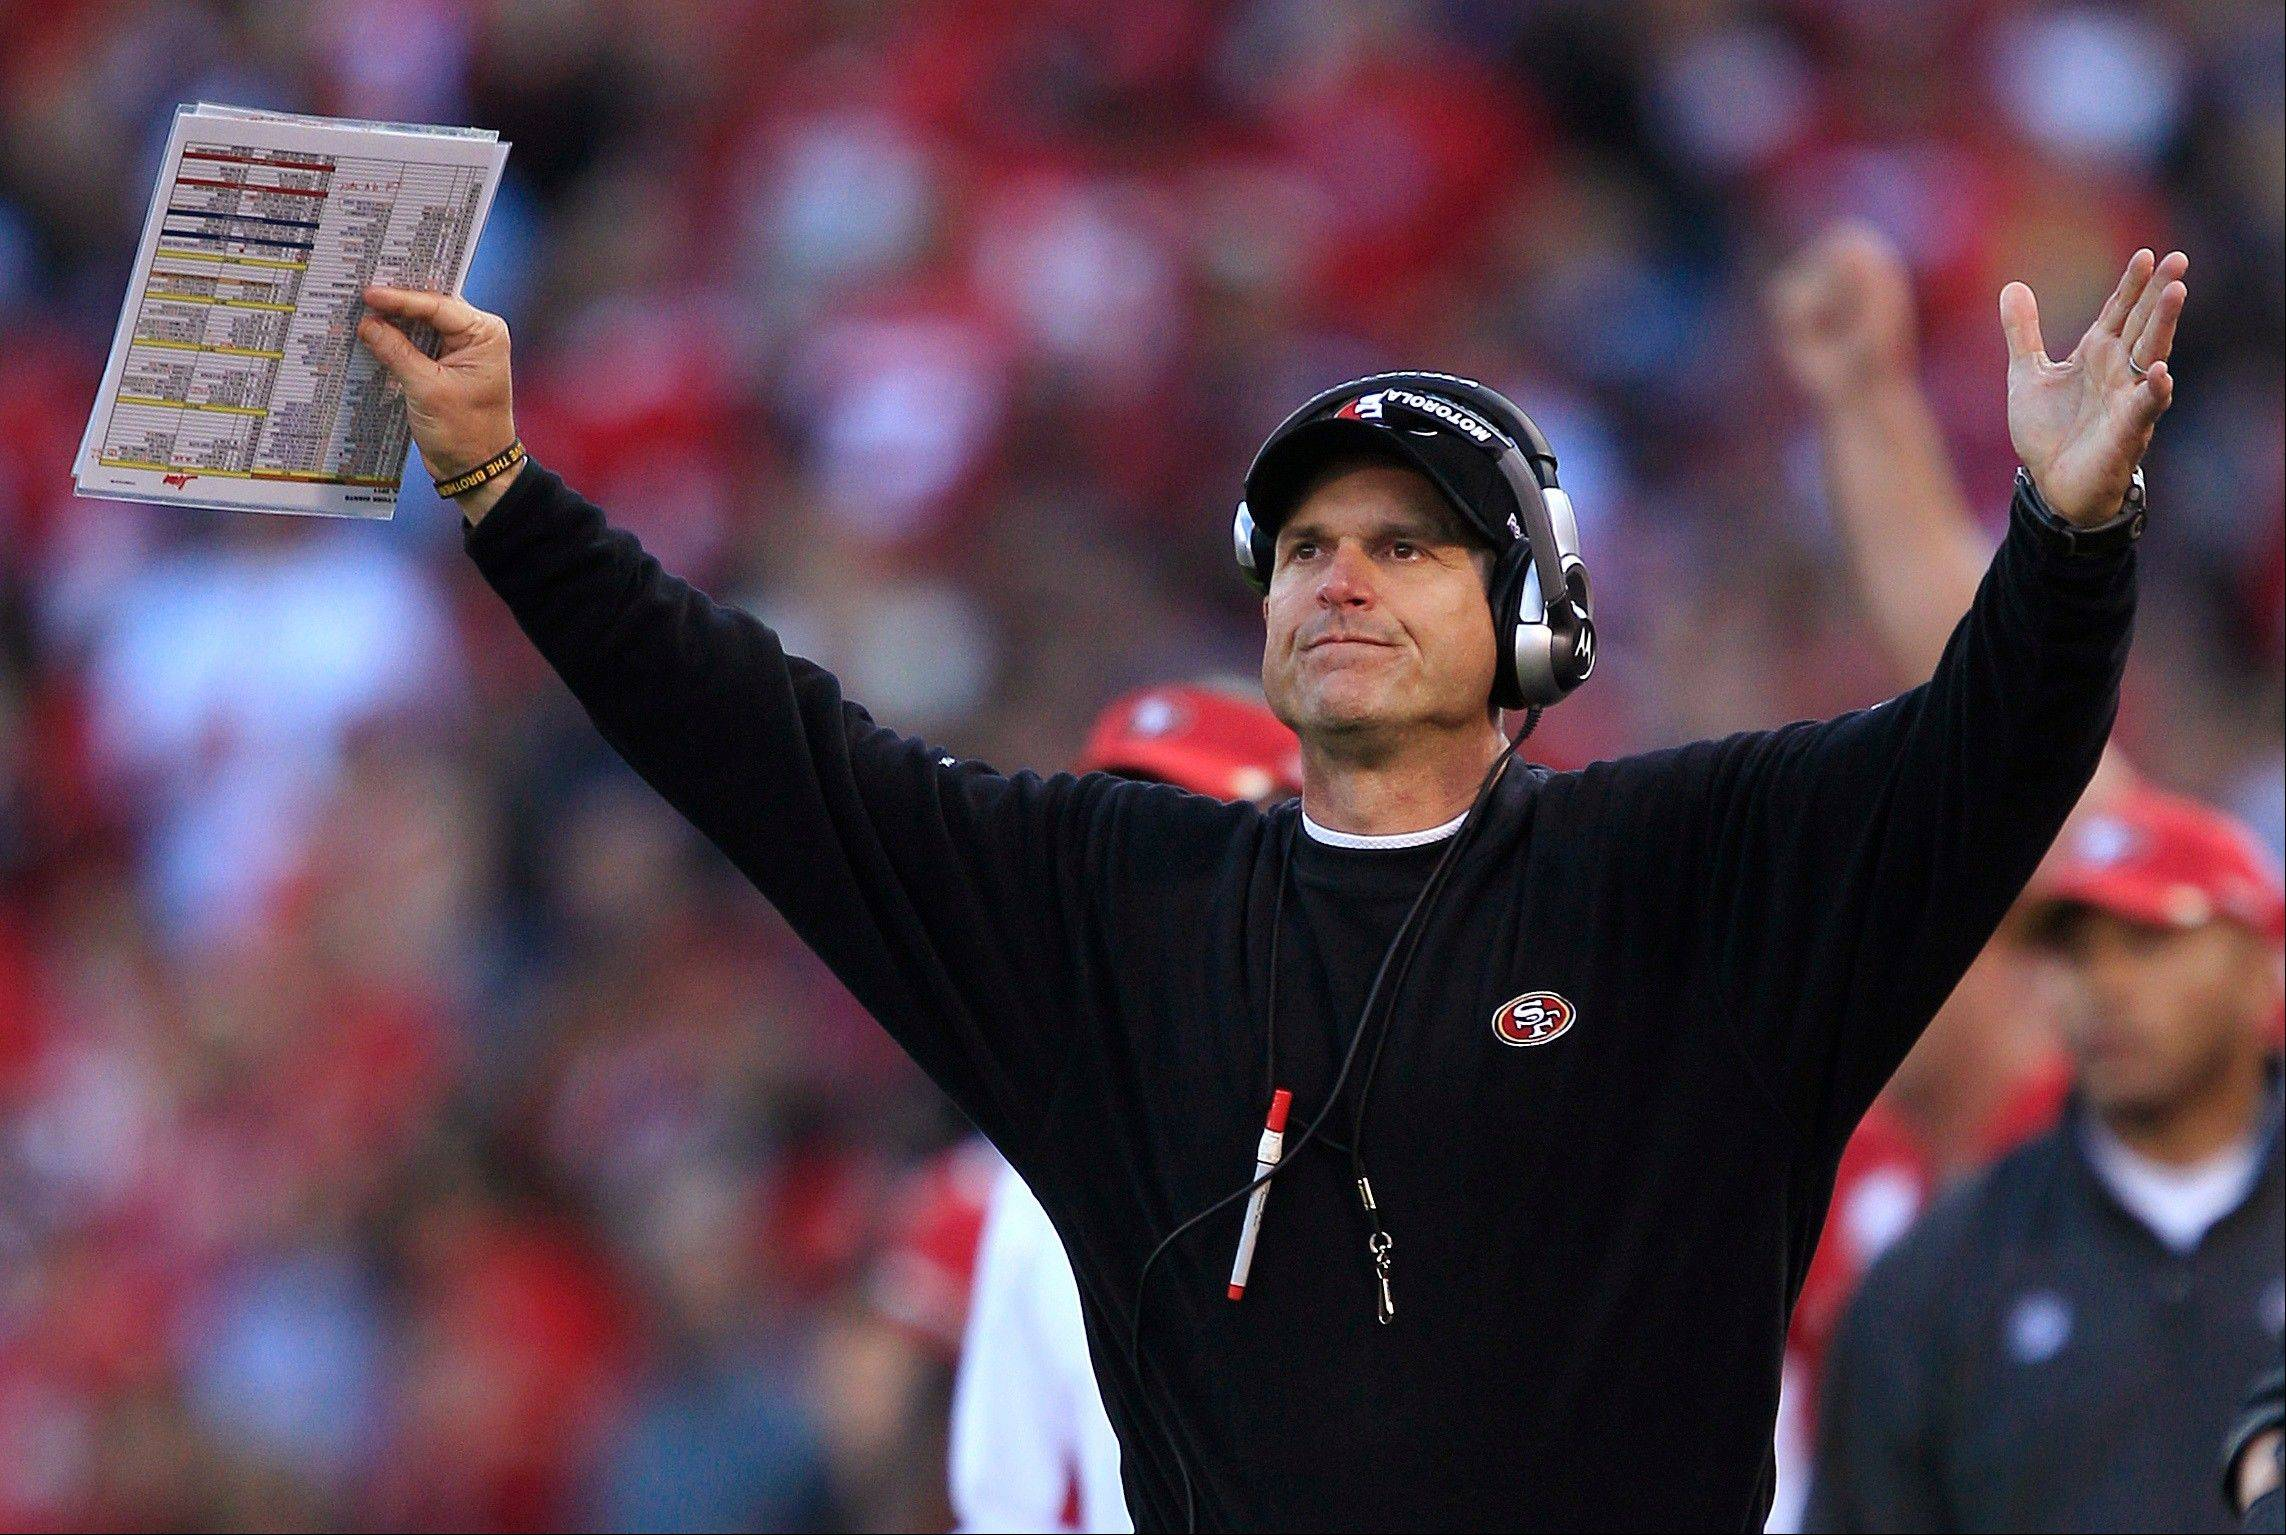 Yes, the San Francisco 49ers are for real, and head coach Jim Harbaugh could finish with the No. 2 seed in the NFC playoffs.